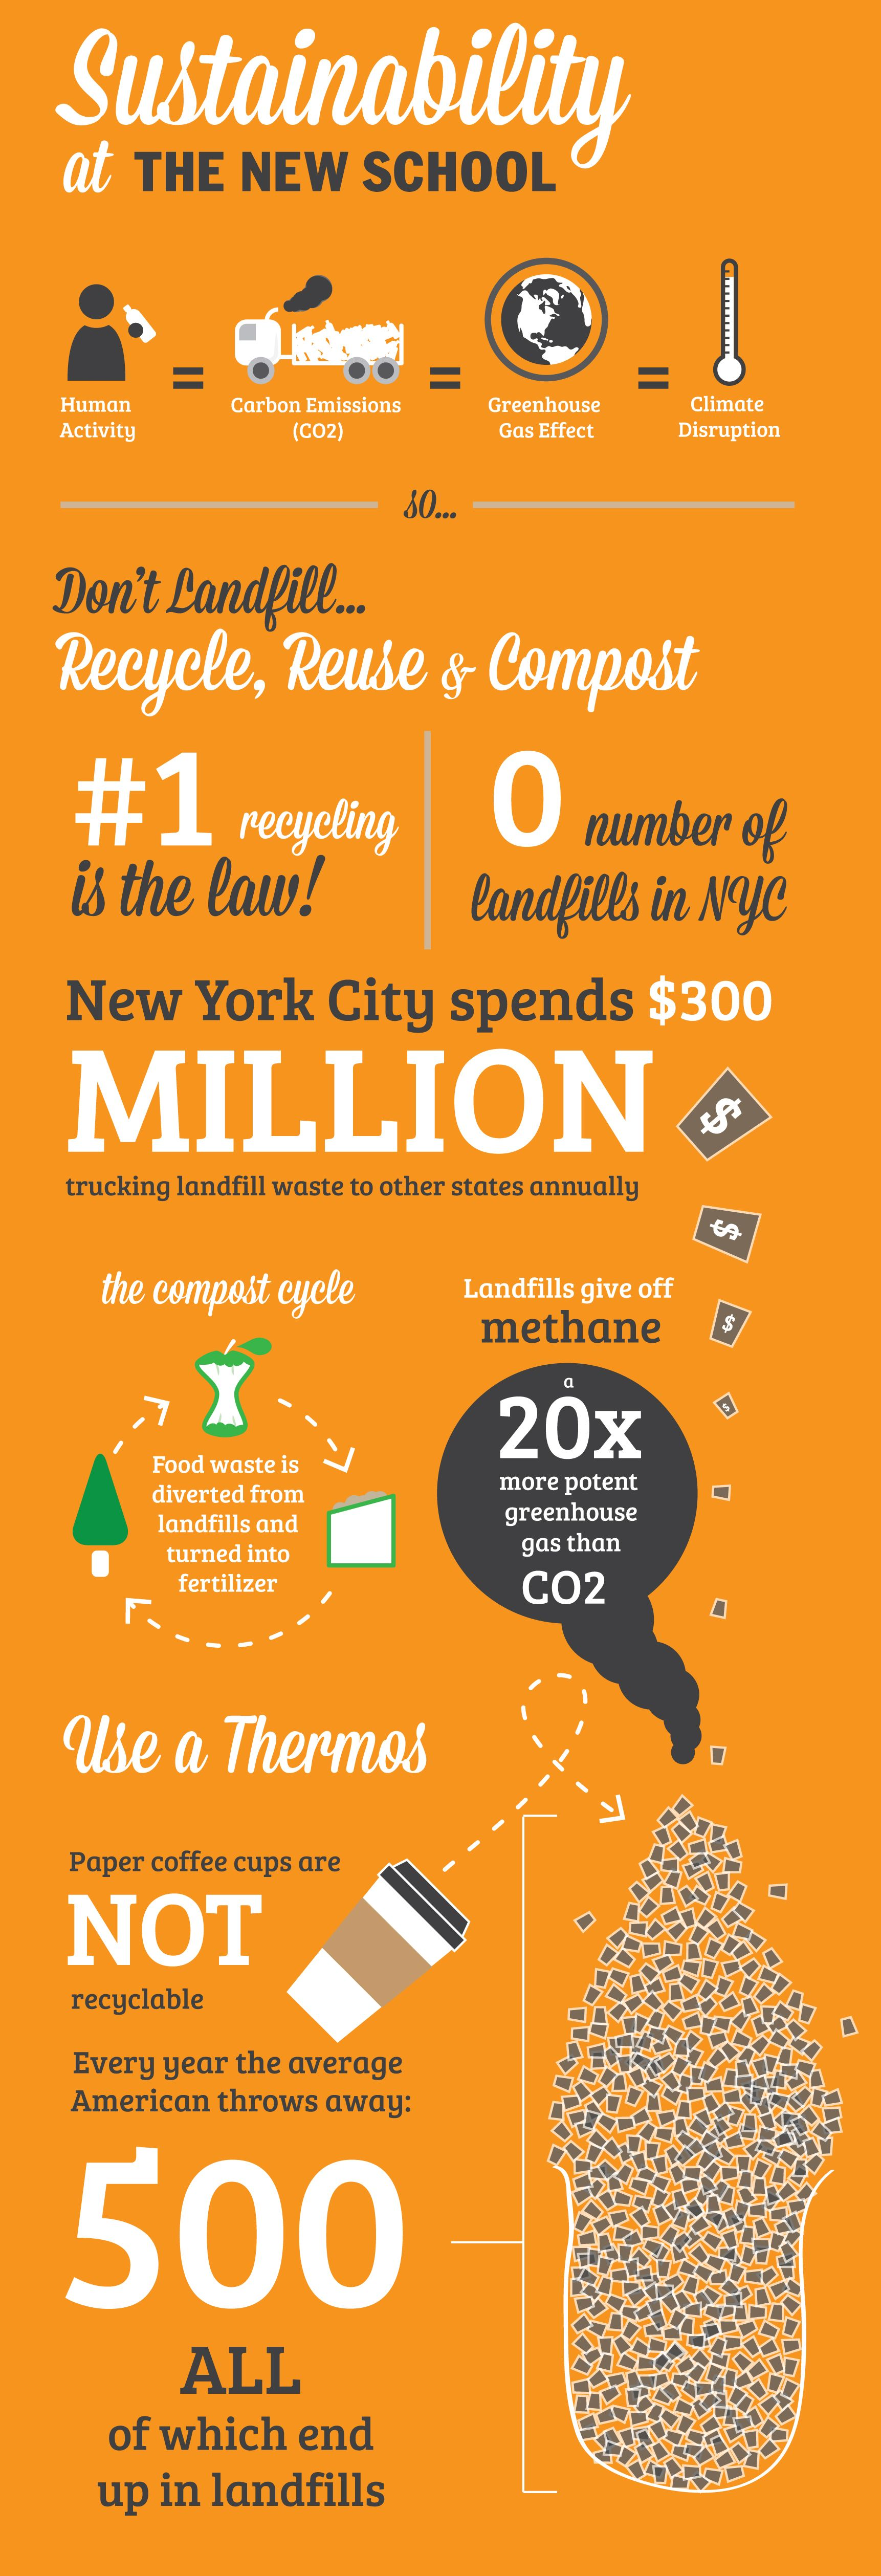 Recycle Reuse Compost Sustainability Recycling Facts The New School